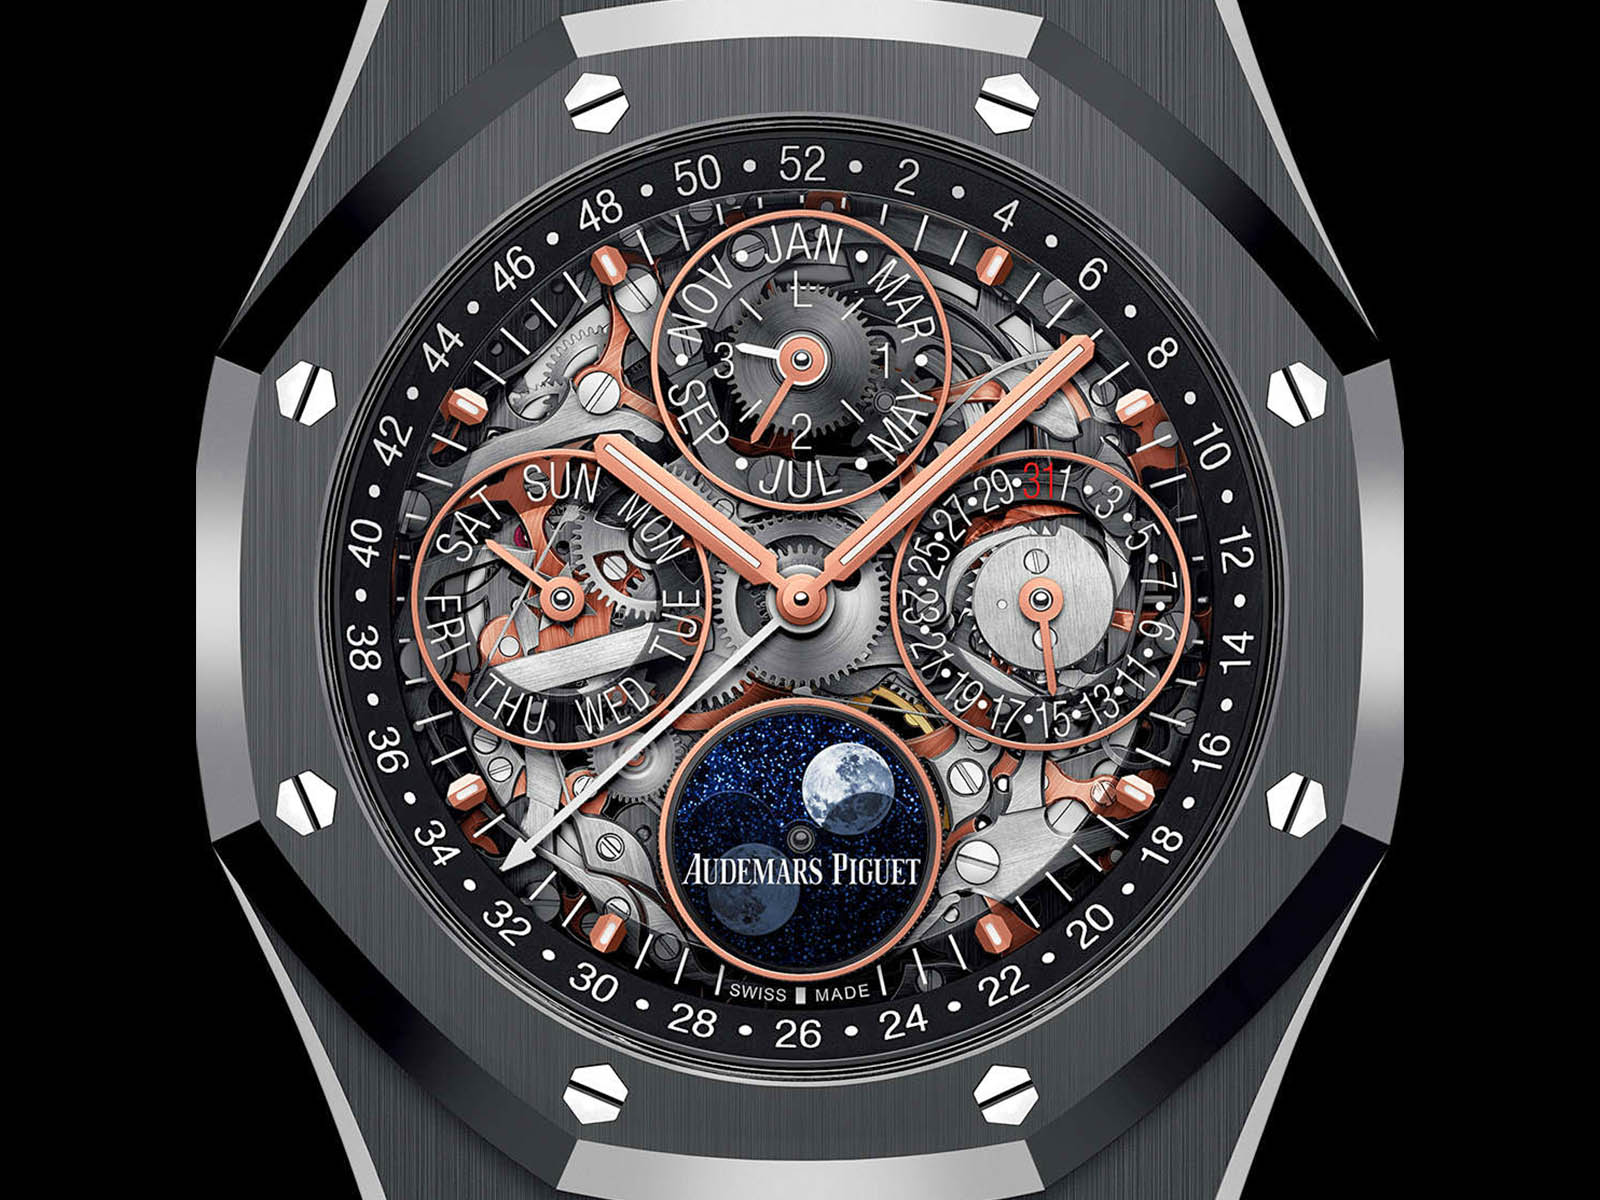 audemars-piguet-royal-oak-perpetual-calendar-ceramic-5.jpg